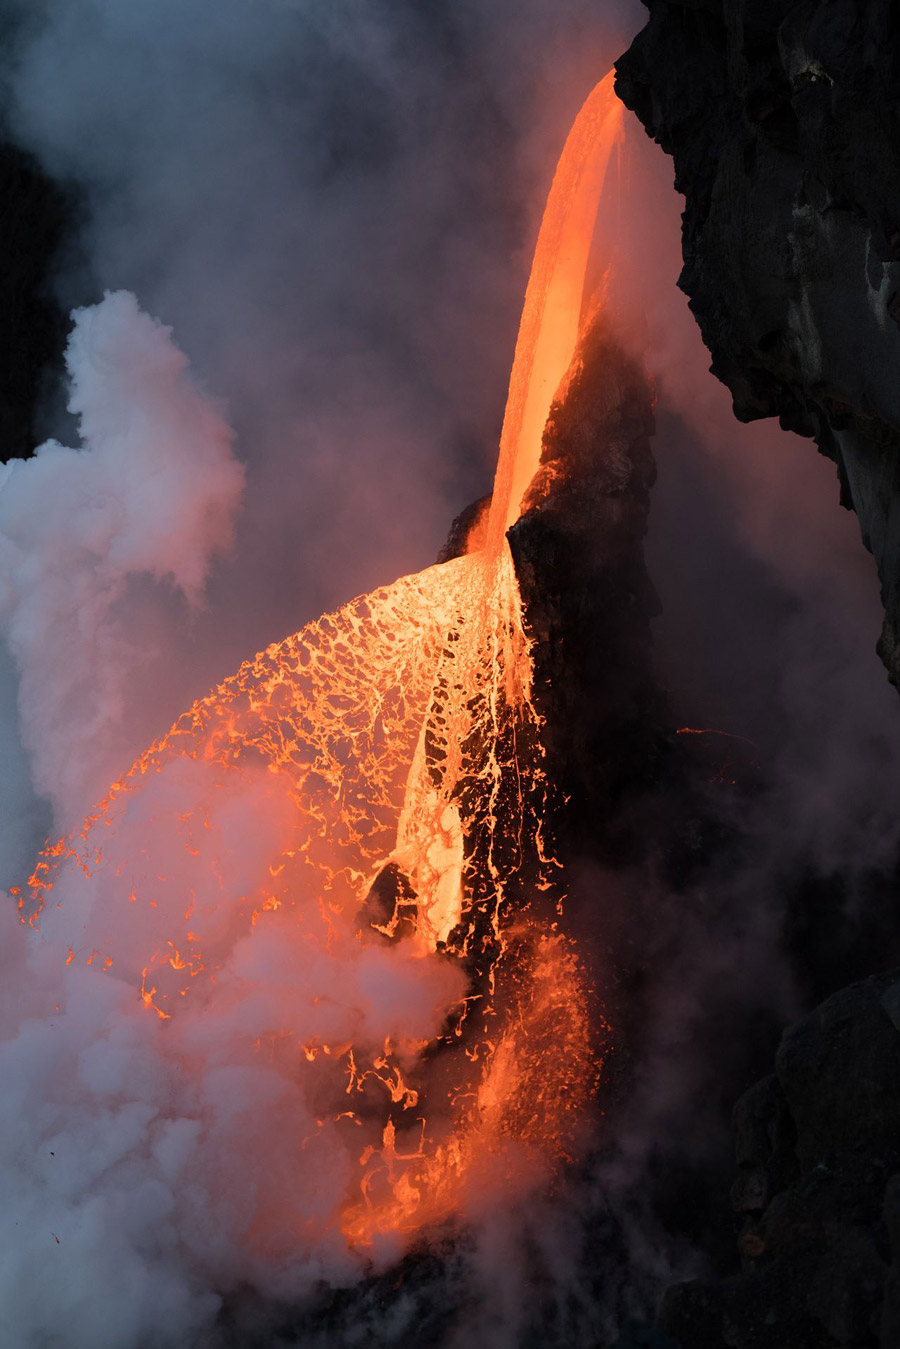 Firefall, © Karim Iliya, 1st Place Winner, Landscapes, National Geographic Nature Photographer of the Year Contest